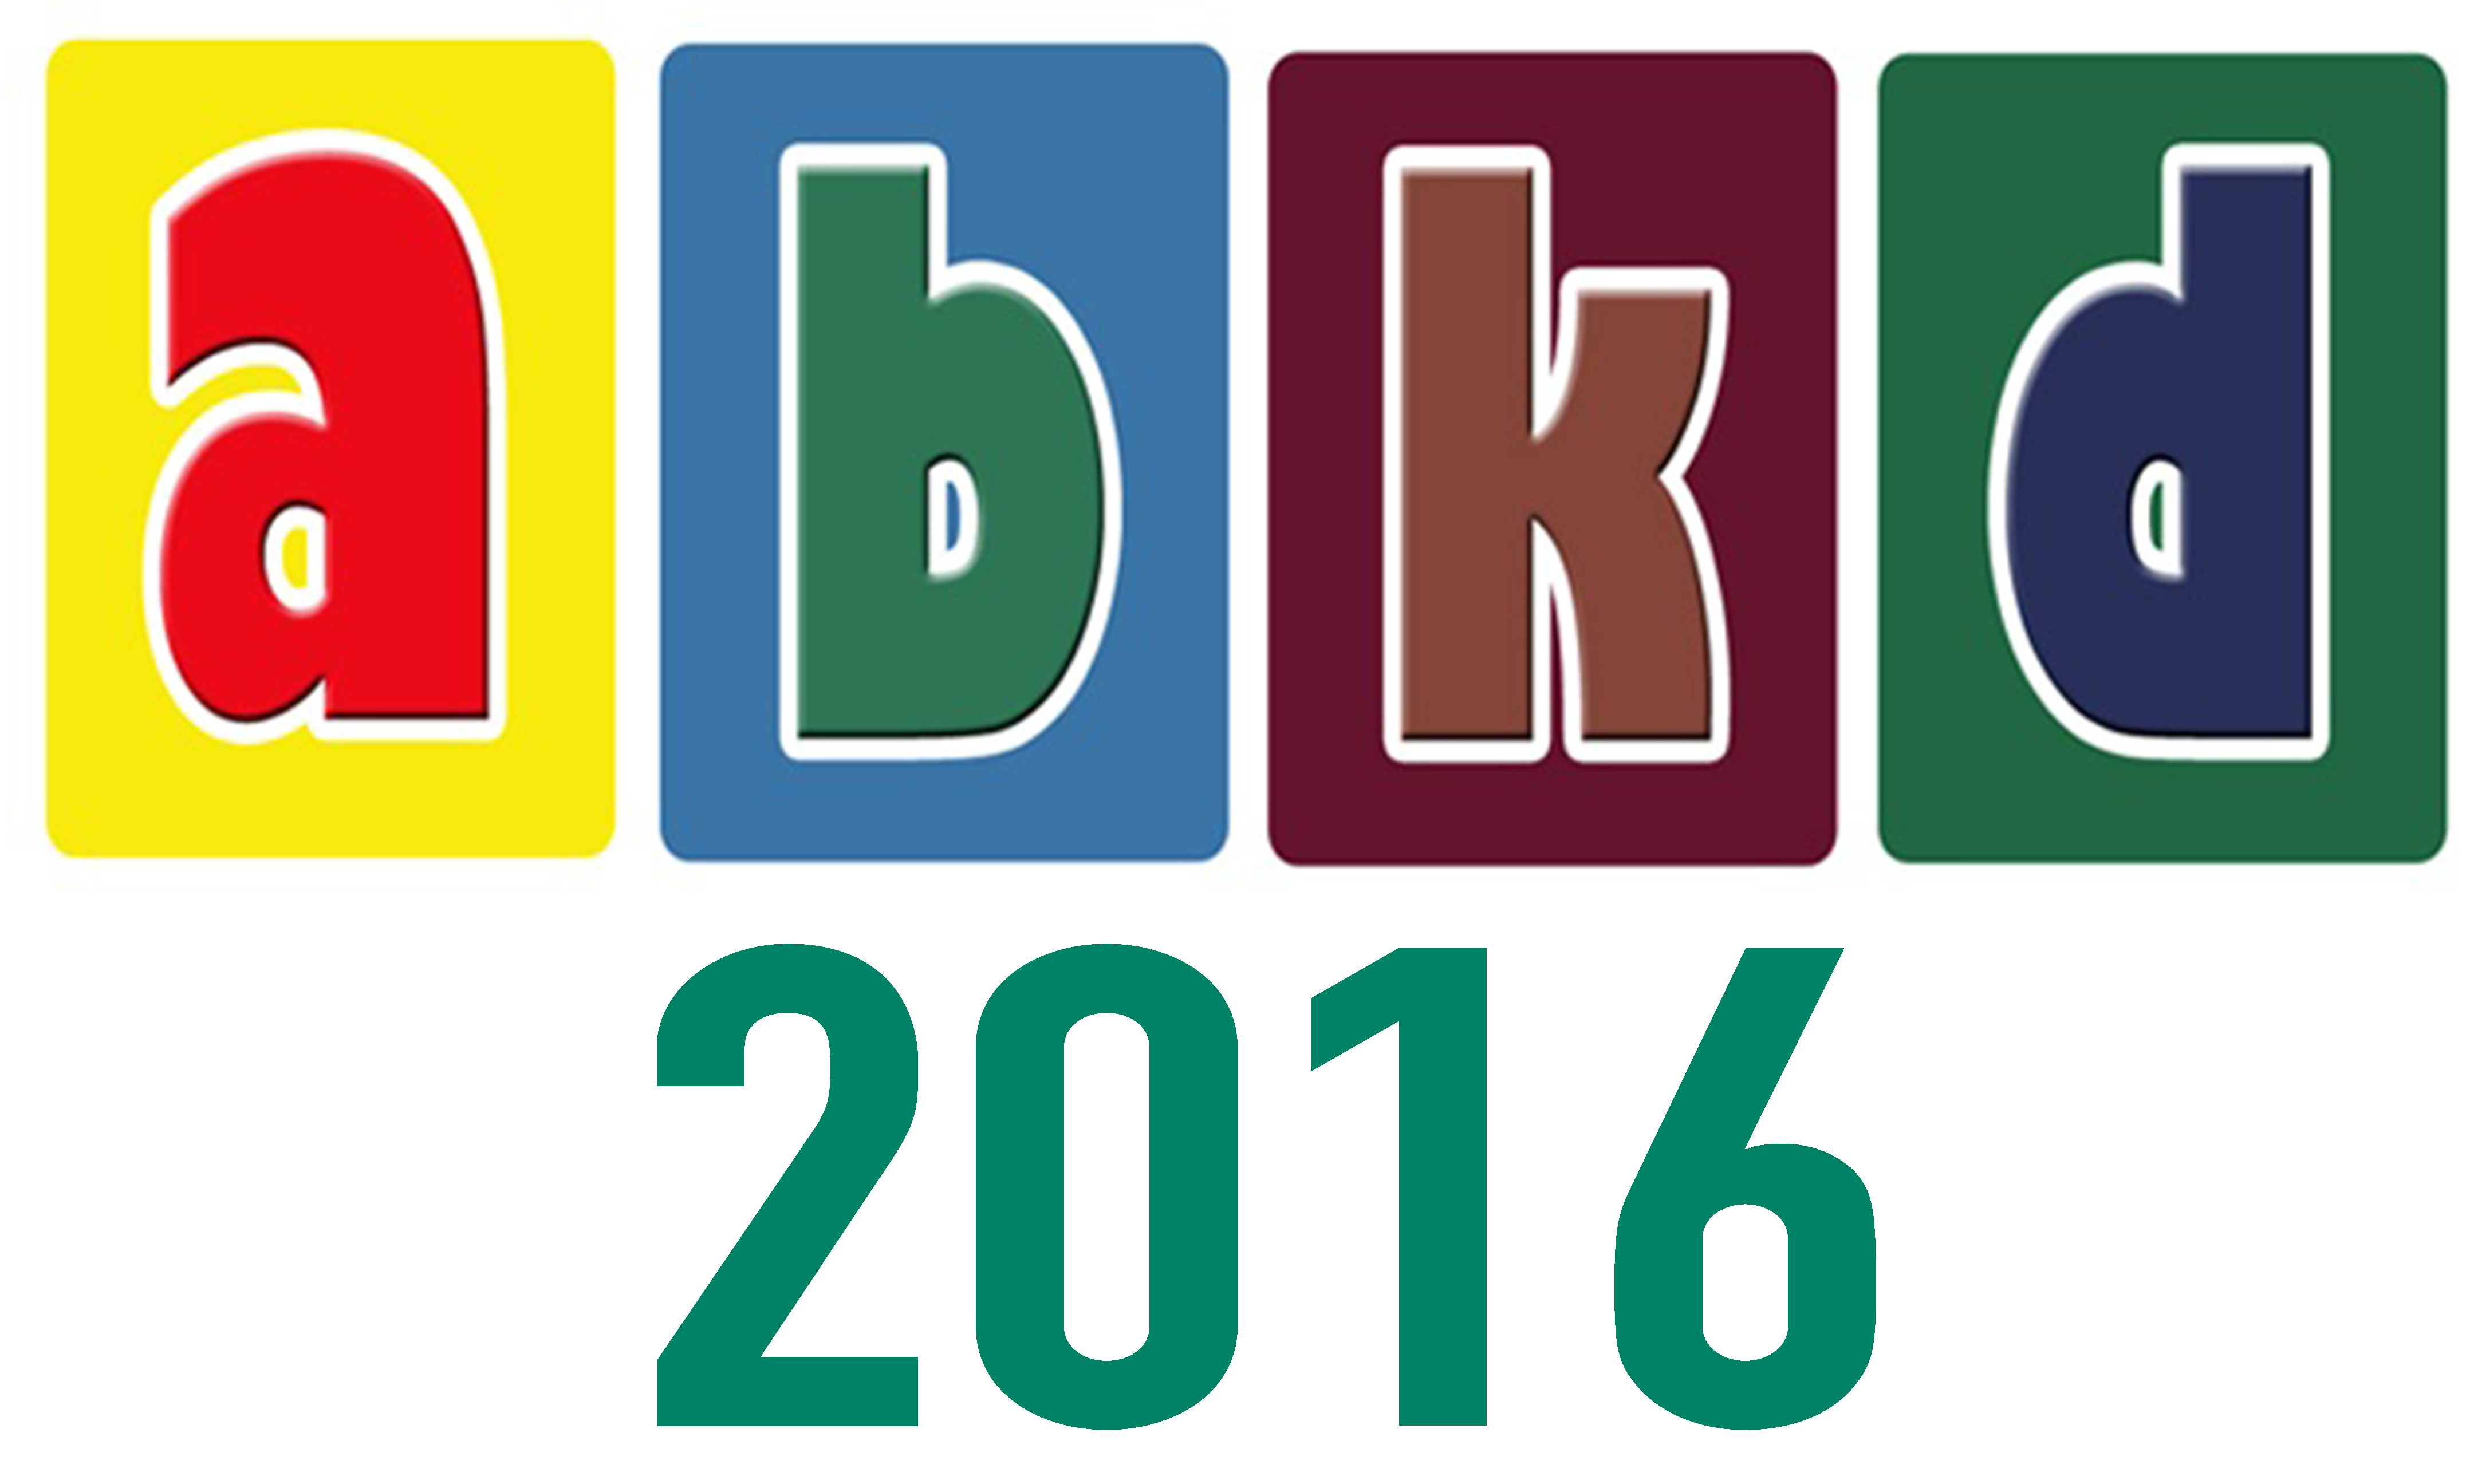 Poster design contest 2016 - 2016 Abkd Poster Making Contest Call For Entries